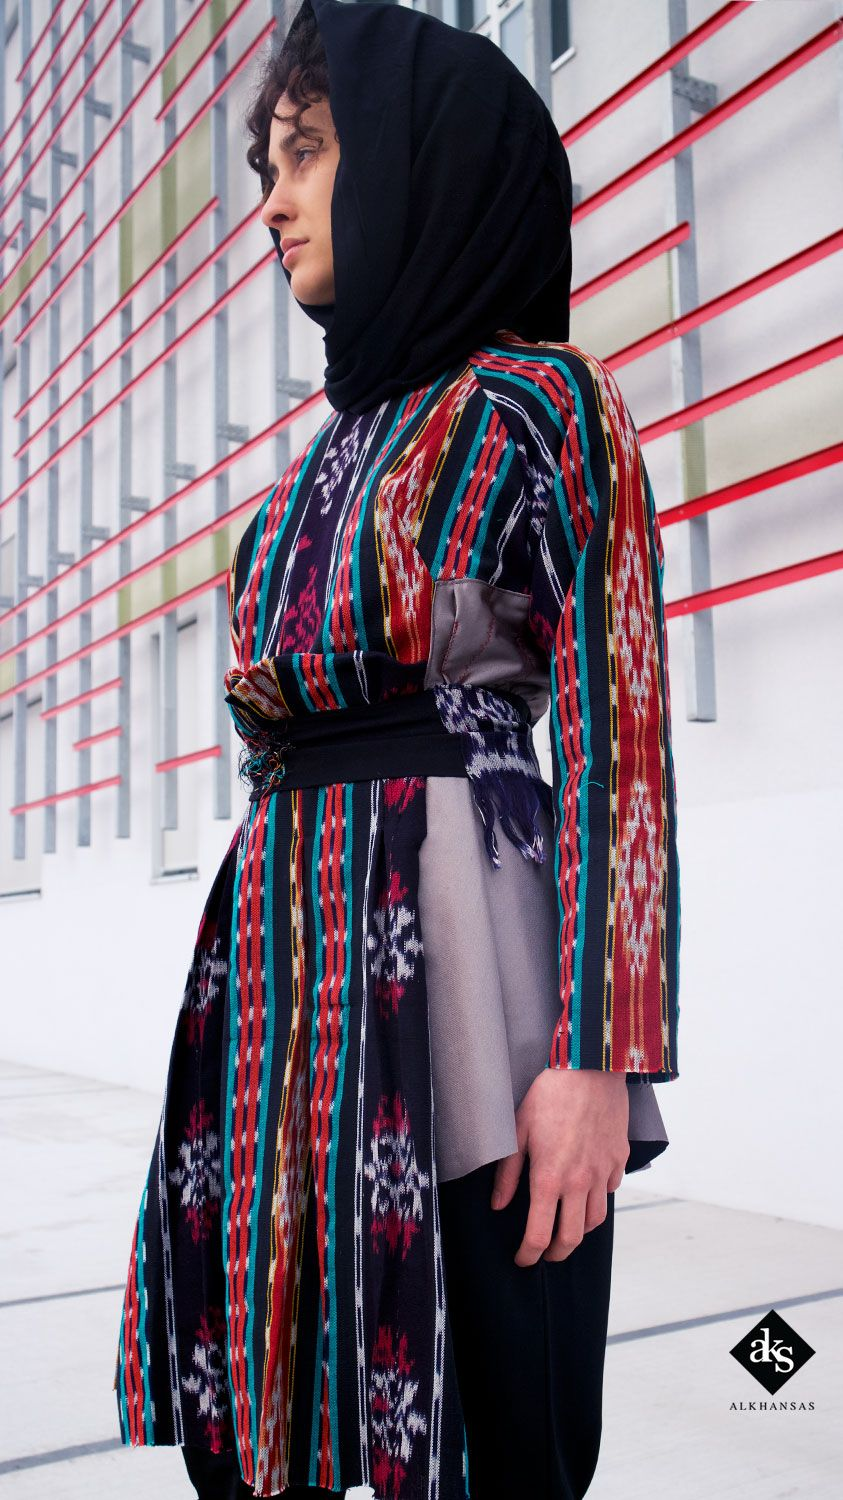 Was 2019 the year of modest fashion movement